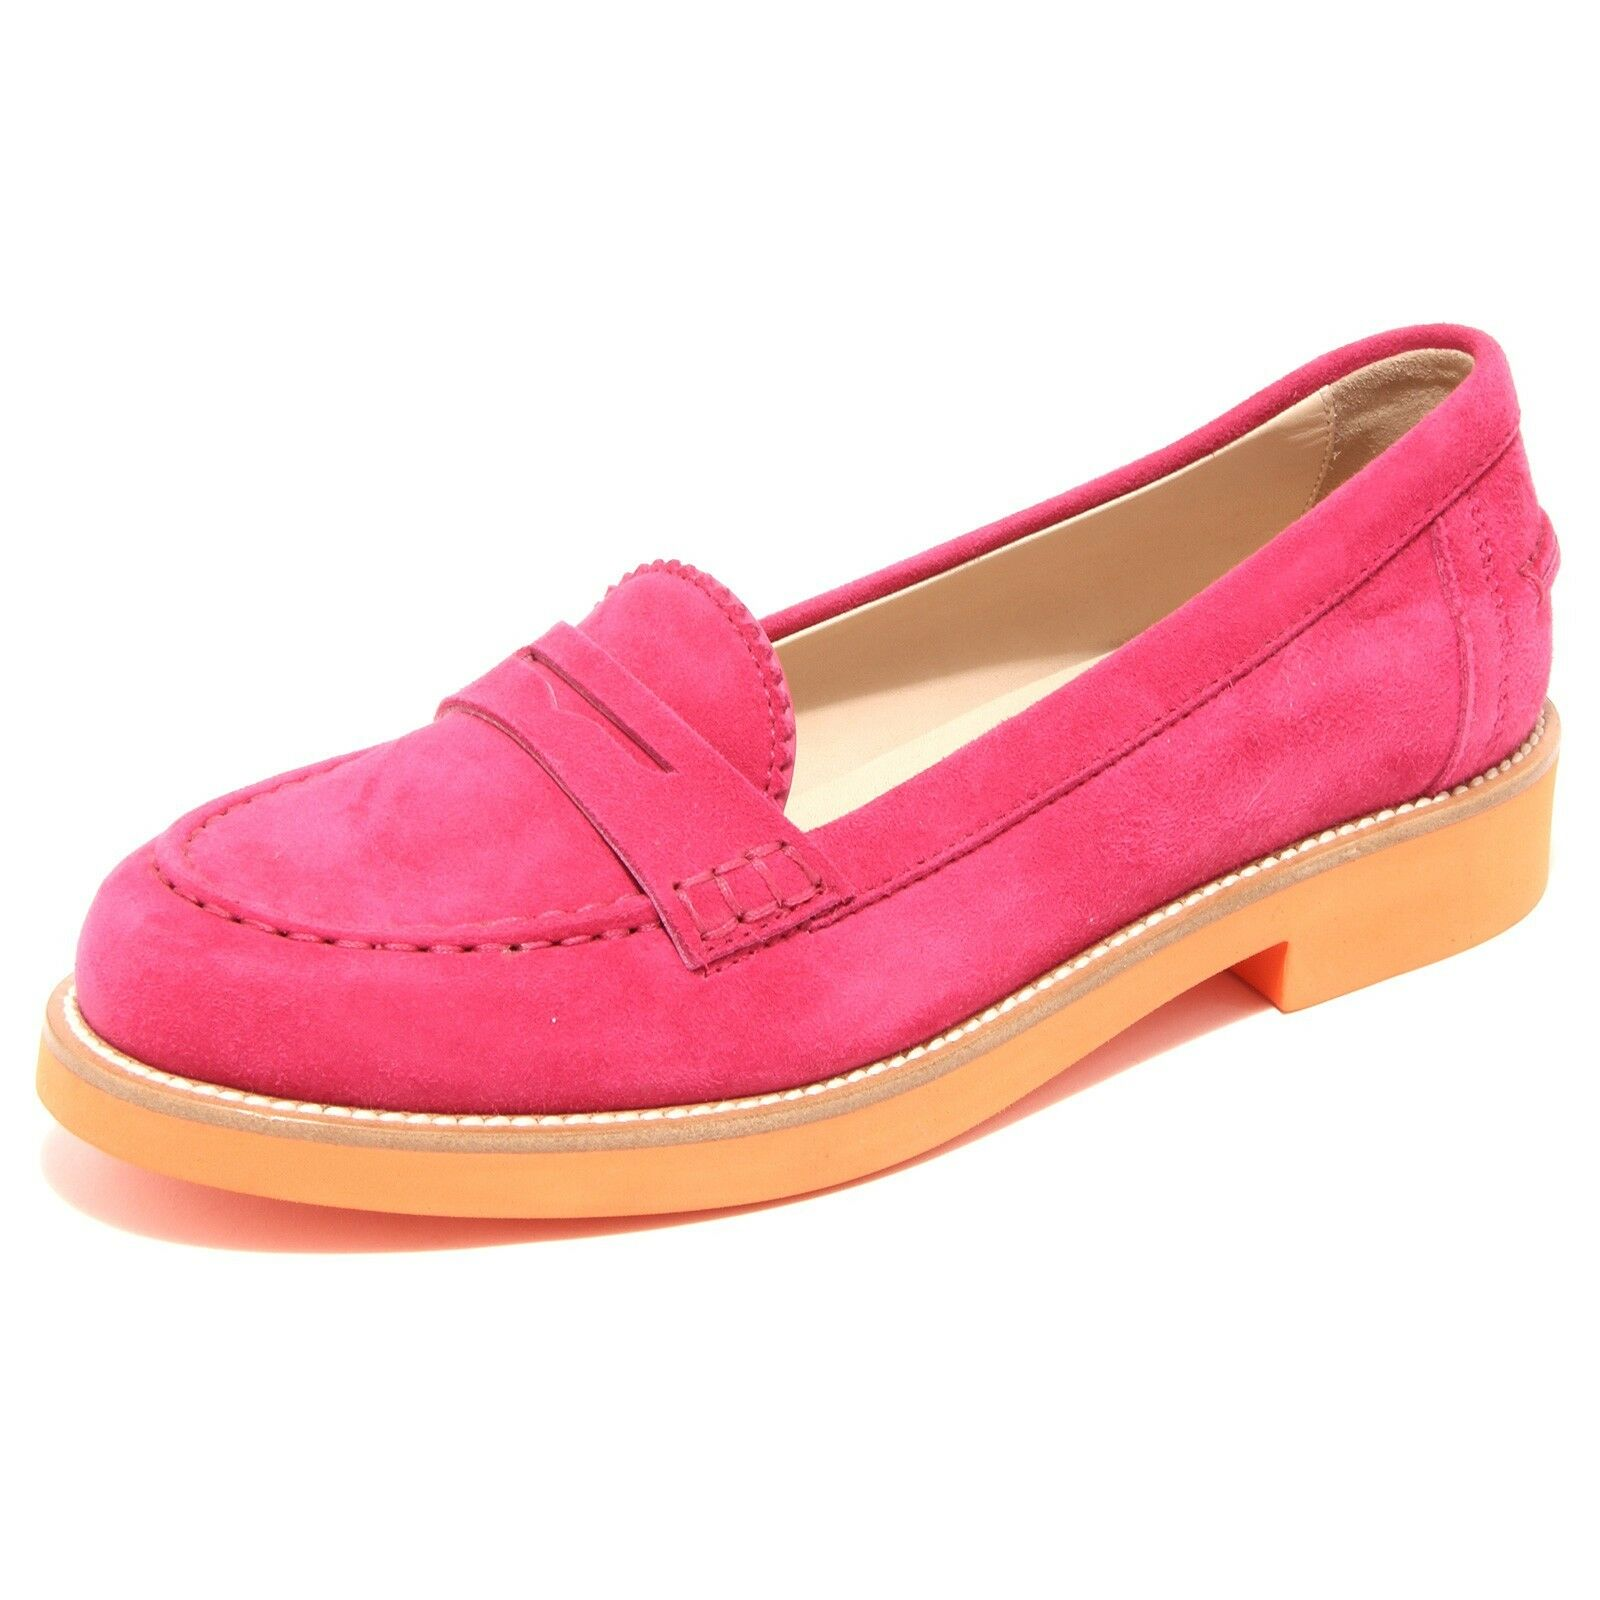 42810 mocassino TODS scarpa donna loafer shoes Donna TOD'S